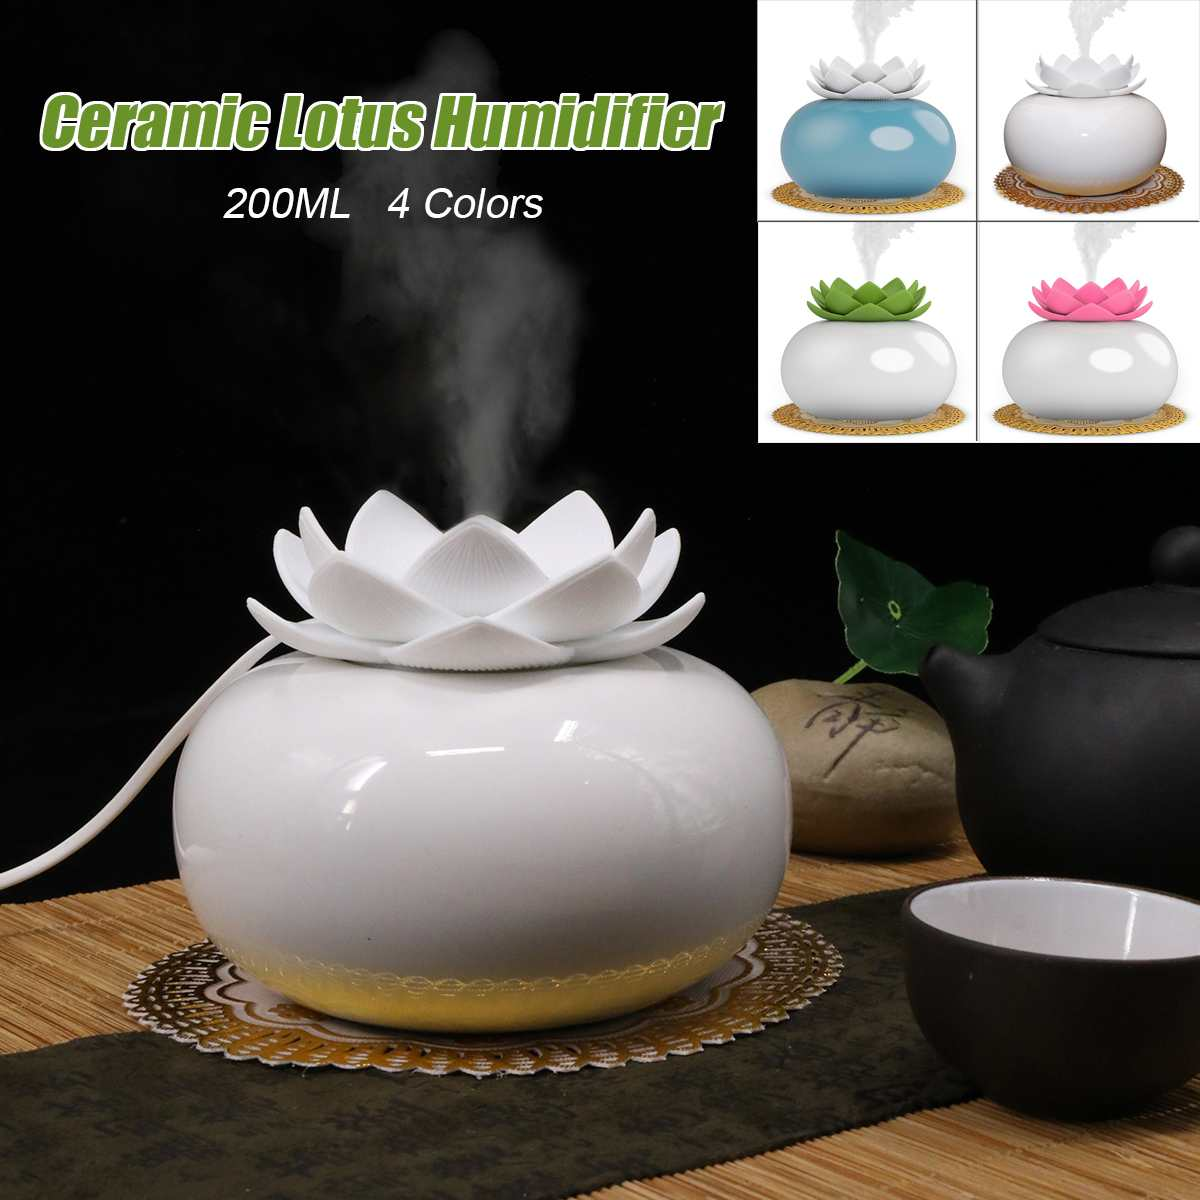 200ML Lotus Ceramic Ultrasonic Aroma Humidifier Air Diffuser Simplicity Lotus Shape Purifier Atomizer Essential Oil Diffuser